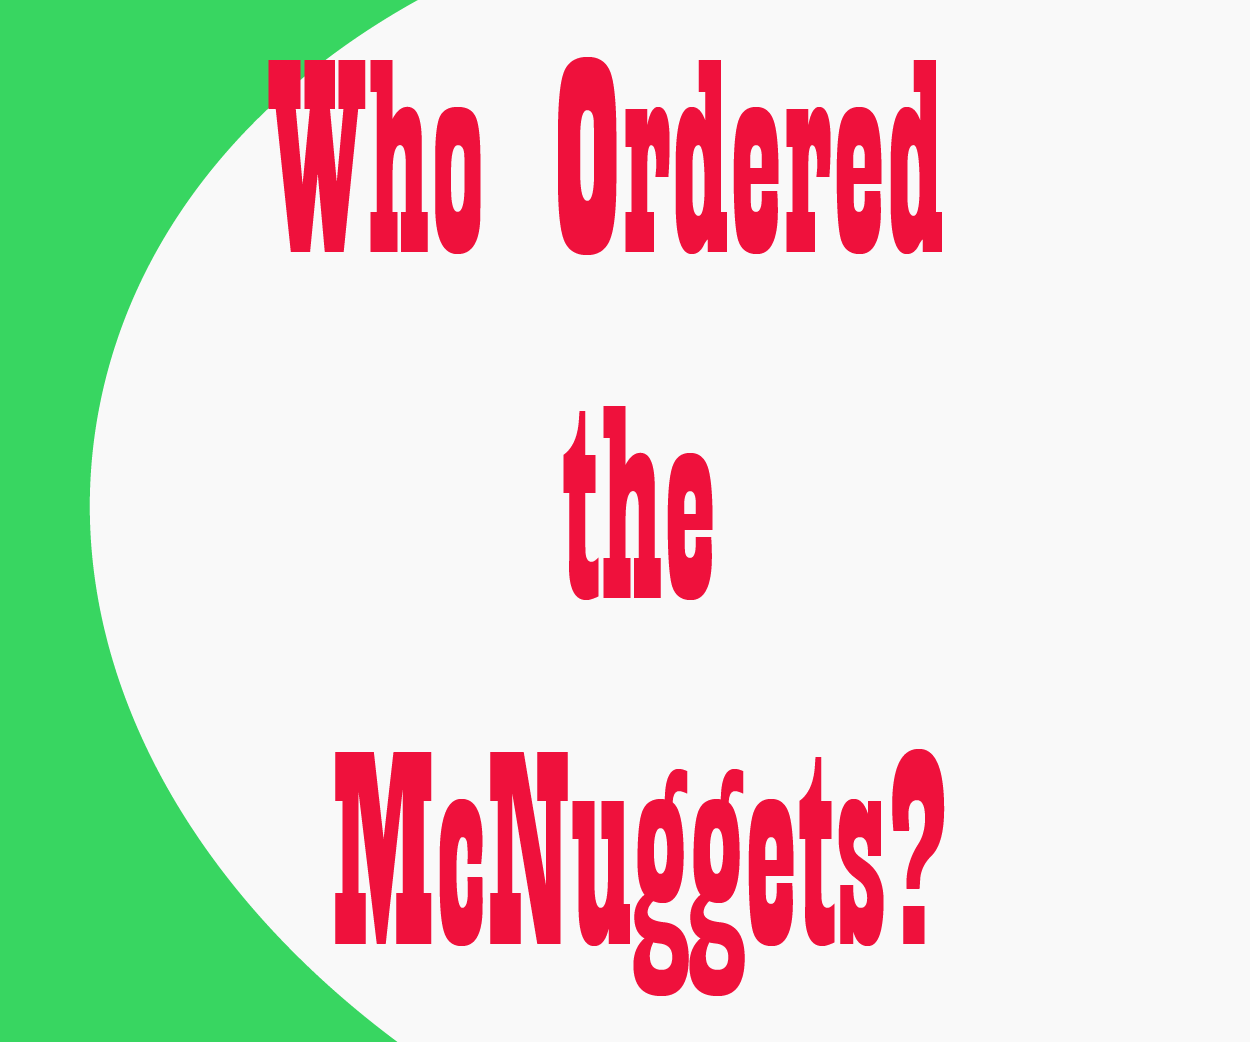 Who ordered the McNuggets?